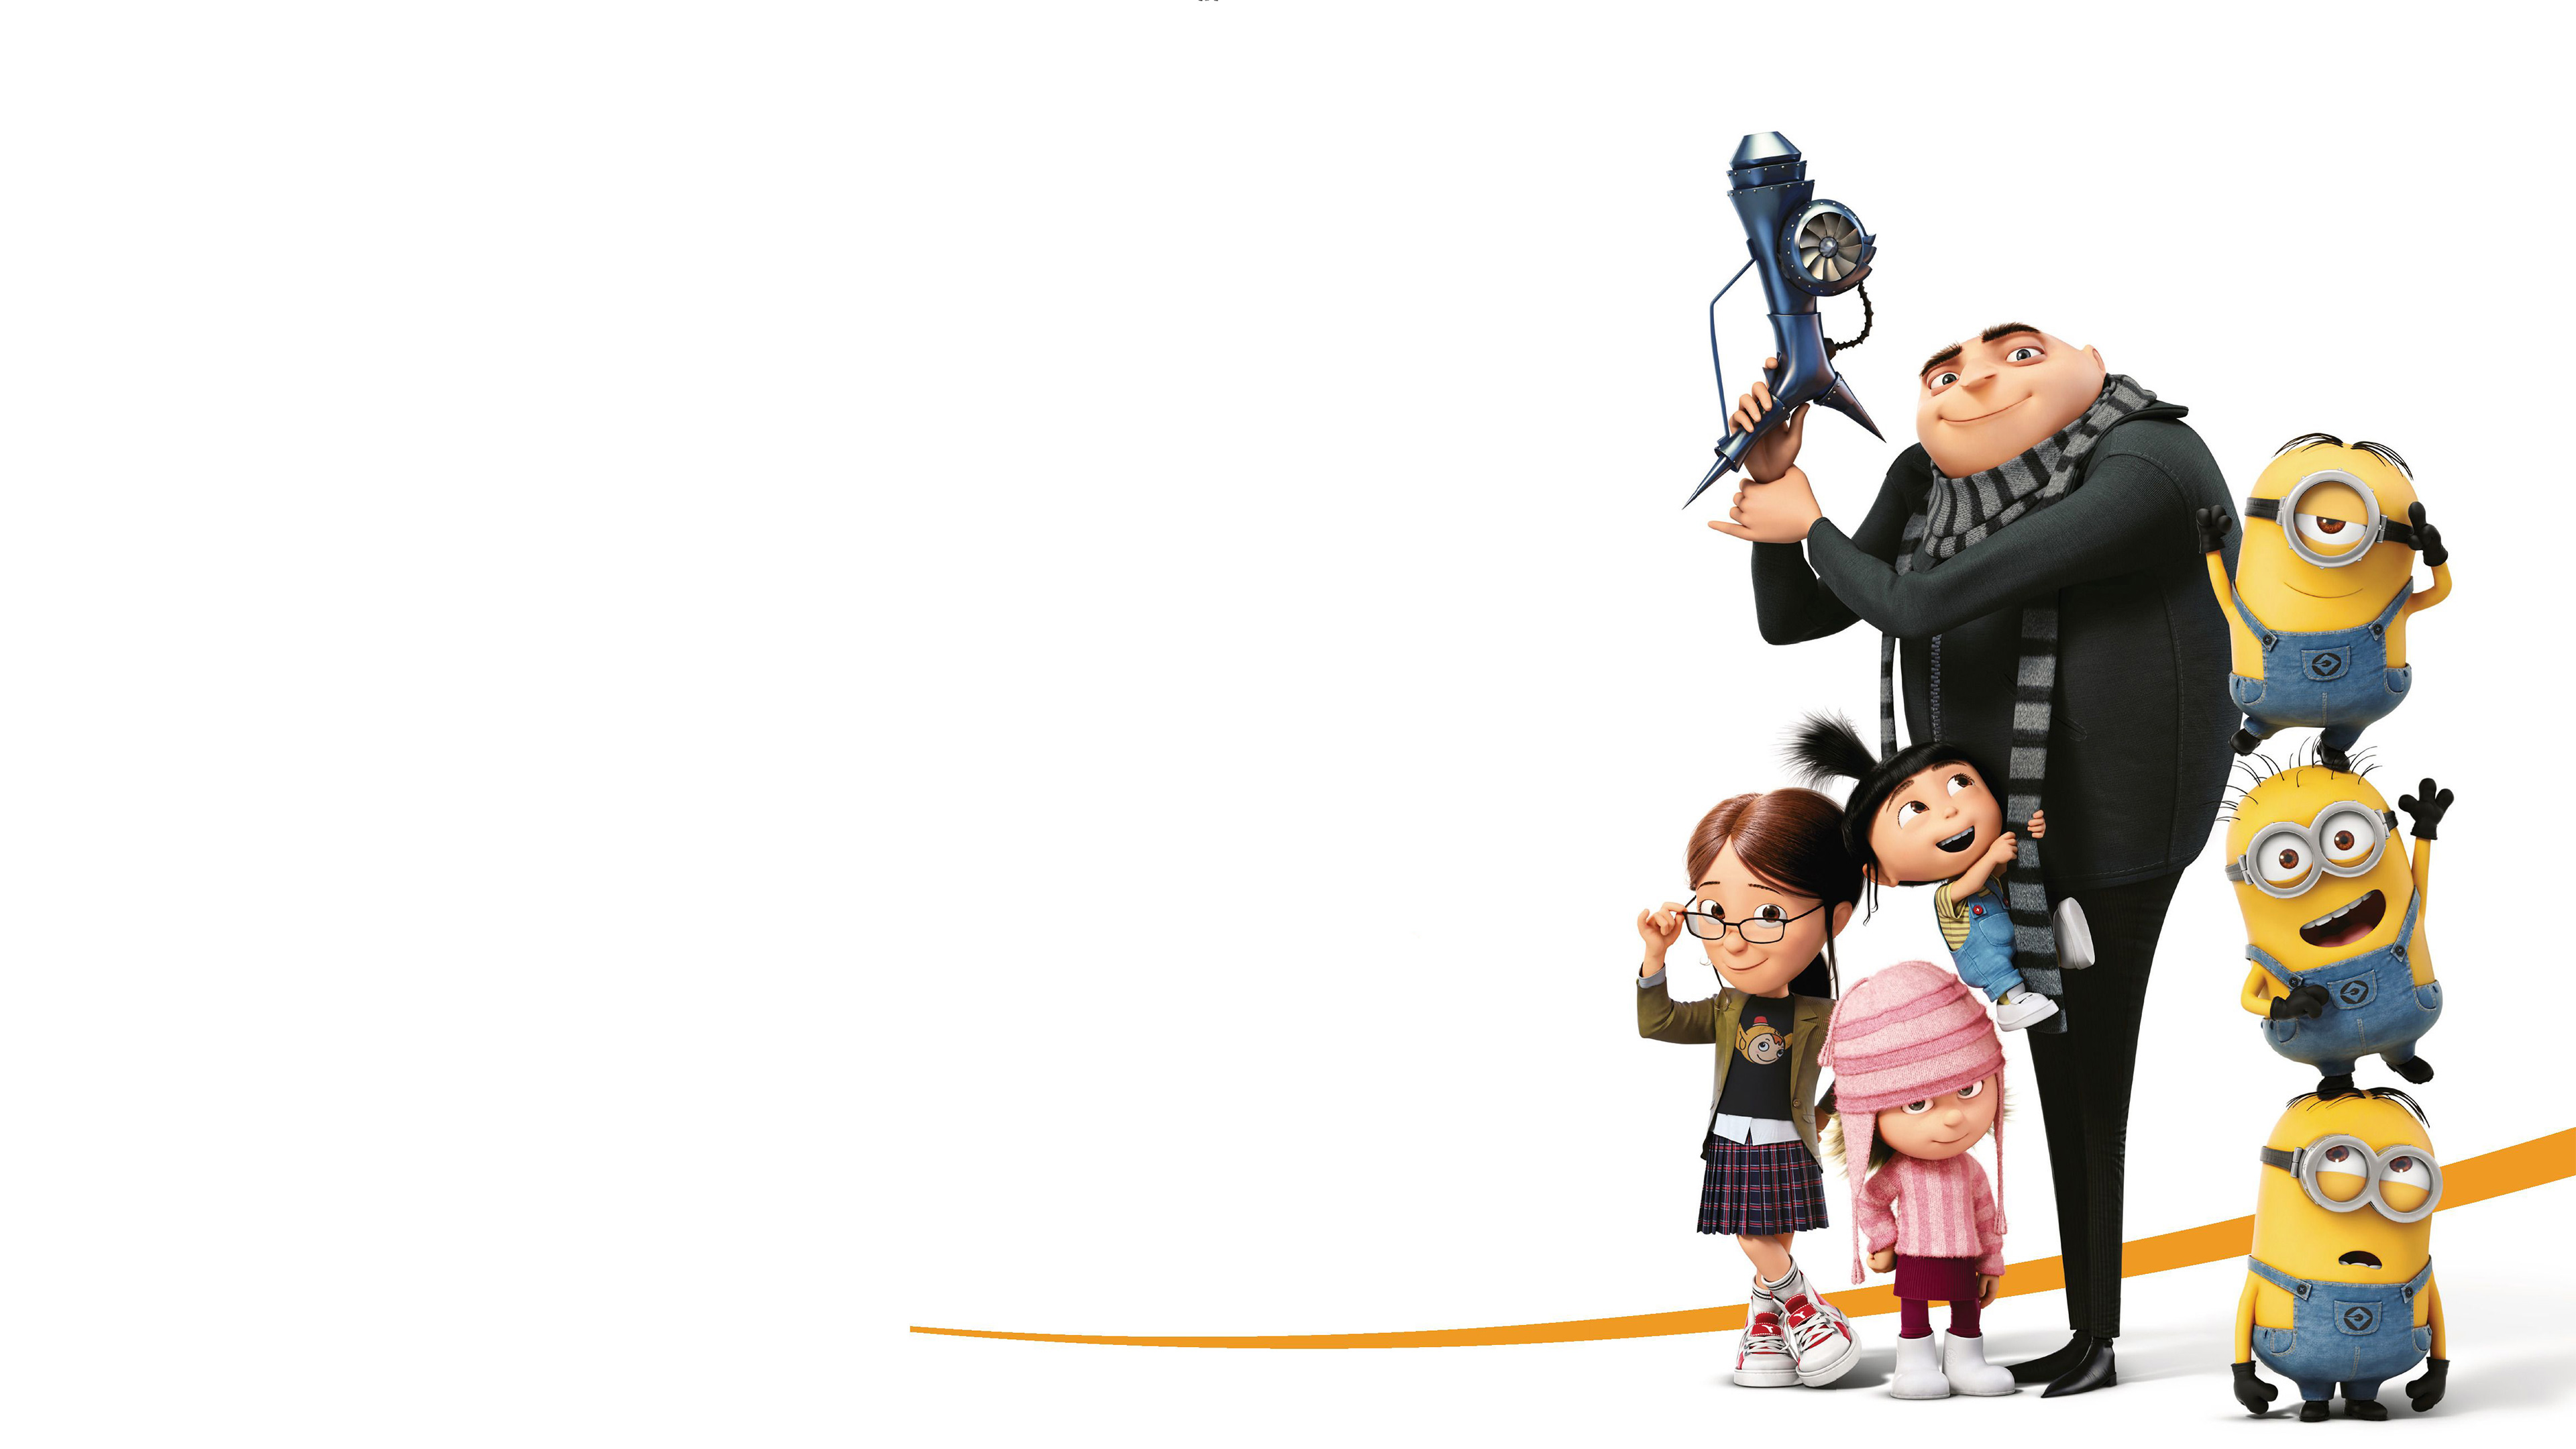 despicable me 3 2017 4k movies hd 4k wallpapers